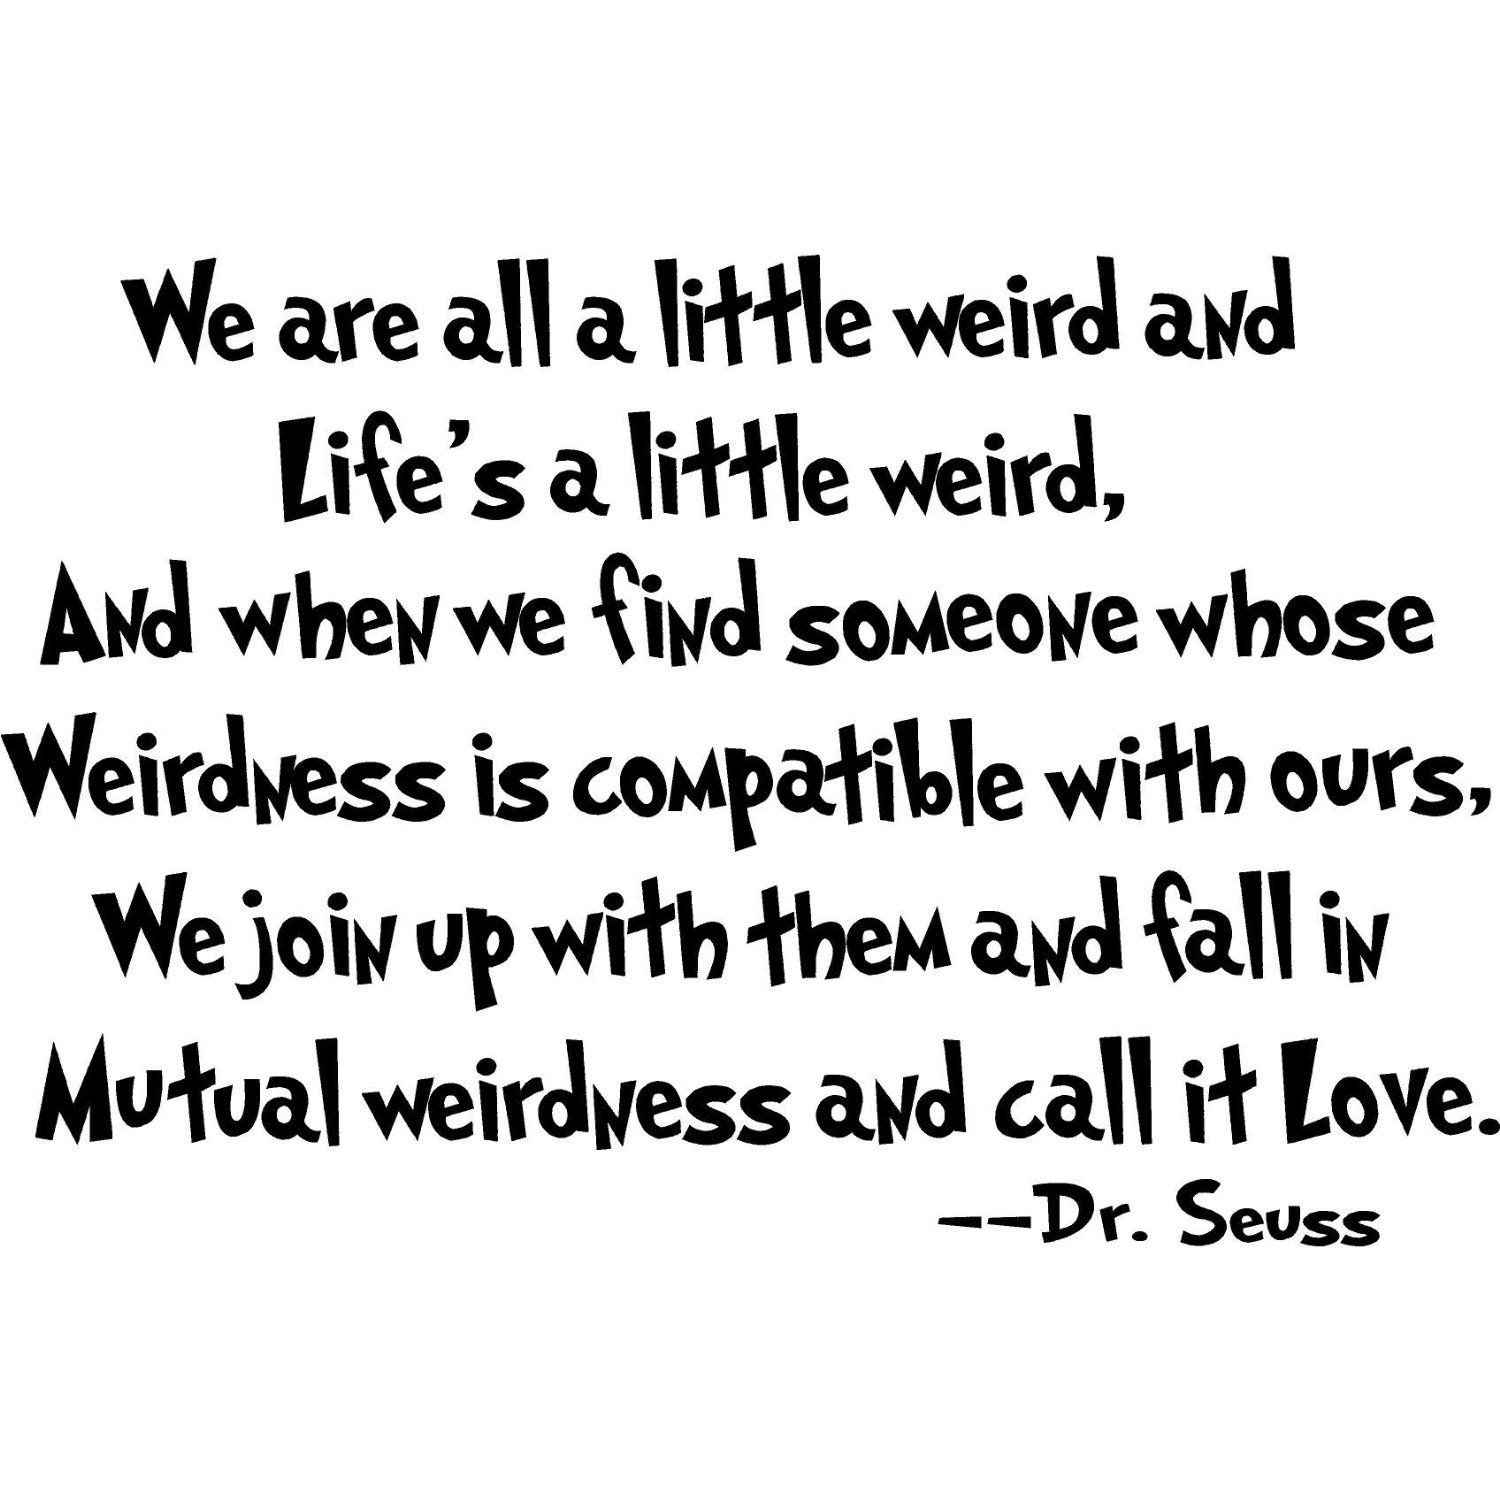 Dr Seuss Weird Love Quote Poster We Are All A Little Weird And Life's A Little Weird And When We